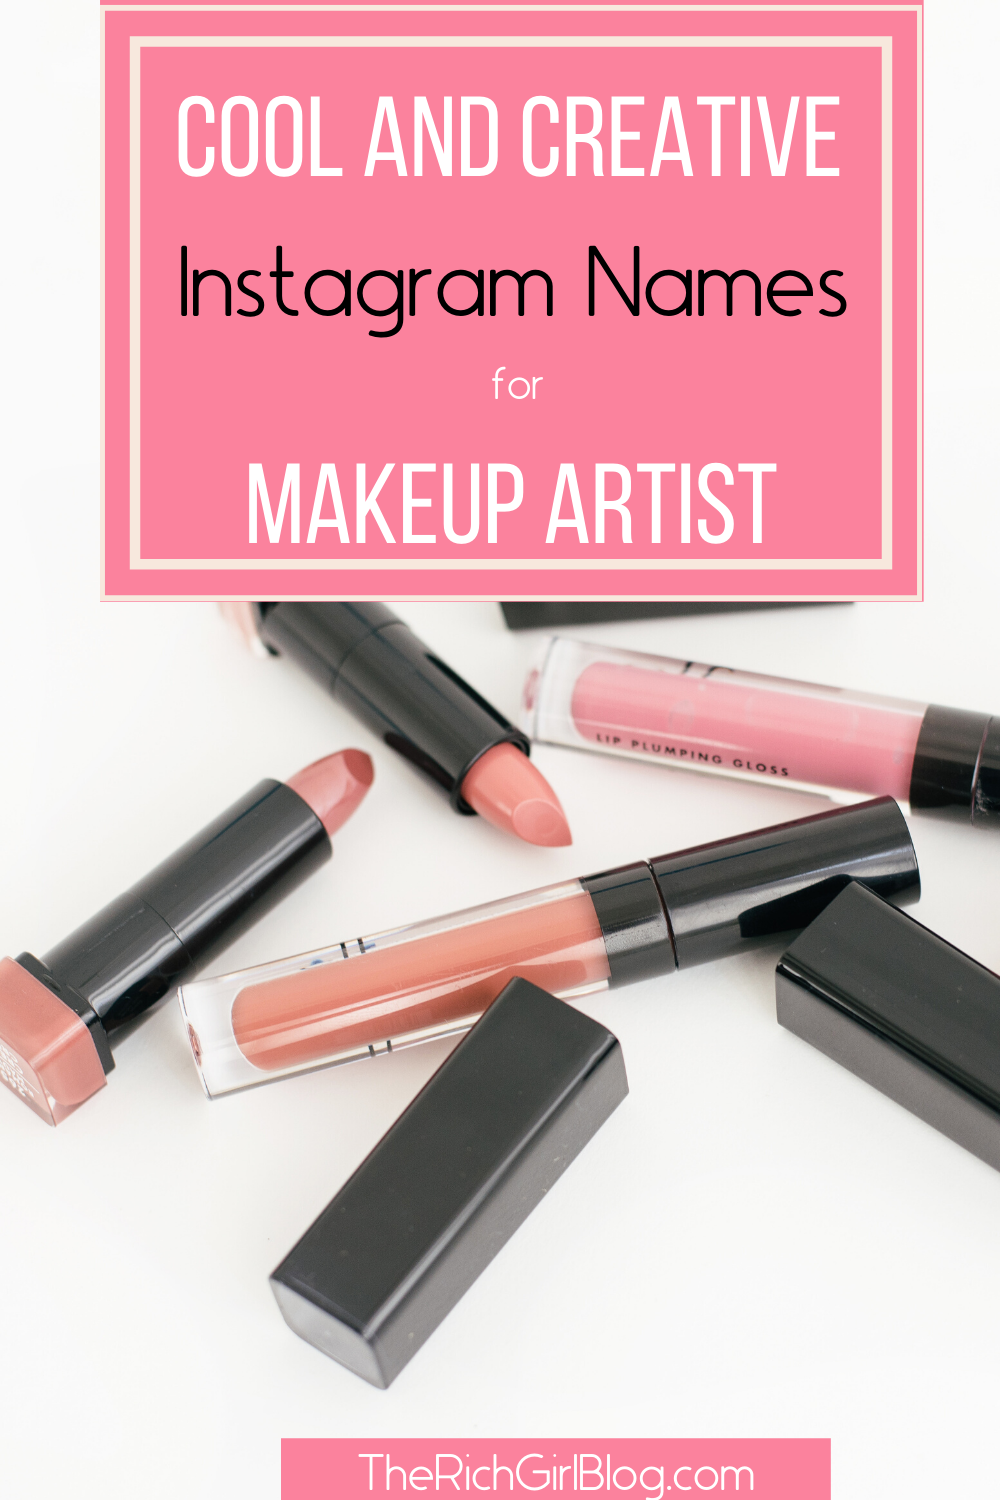 100+ Of The Best Makeup Artist and Beauty Instagram Names